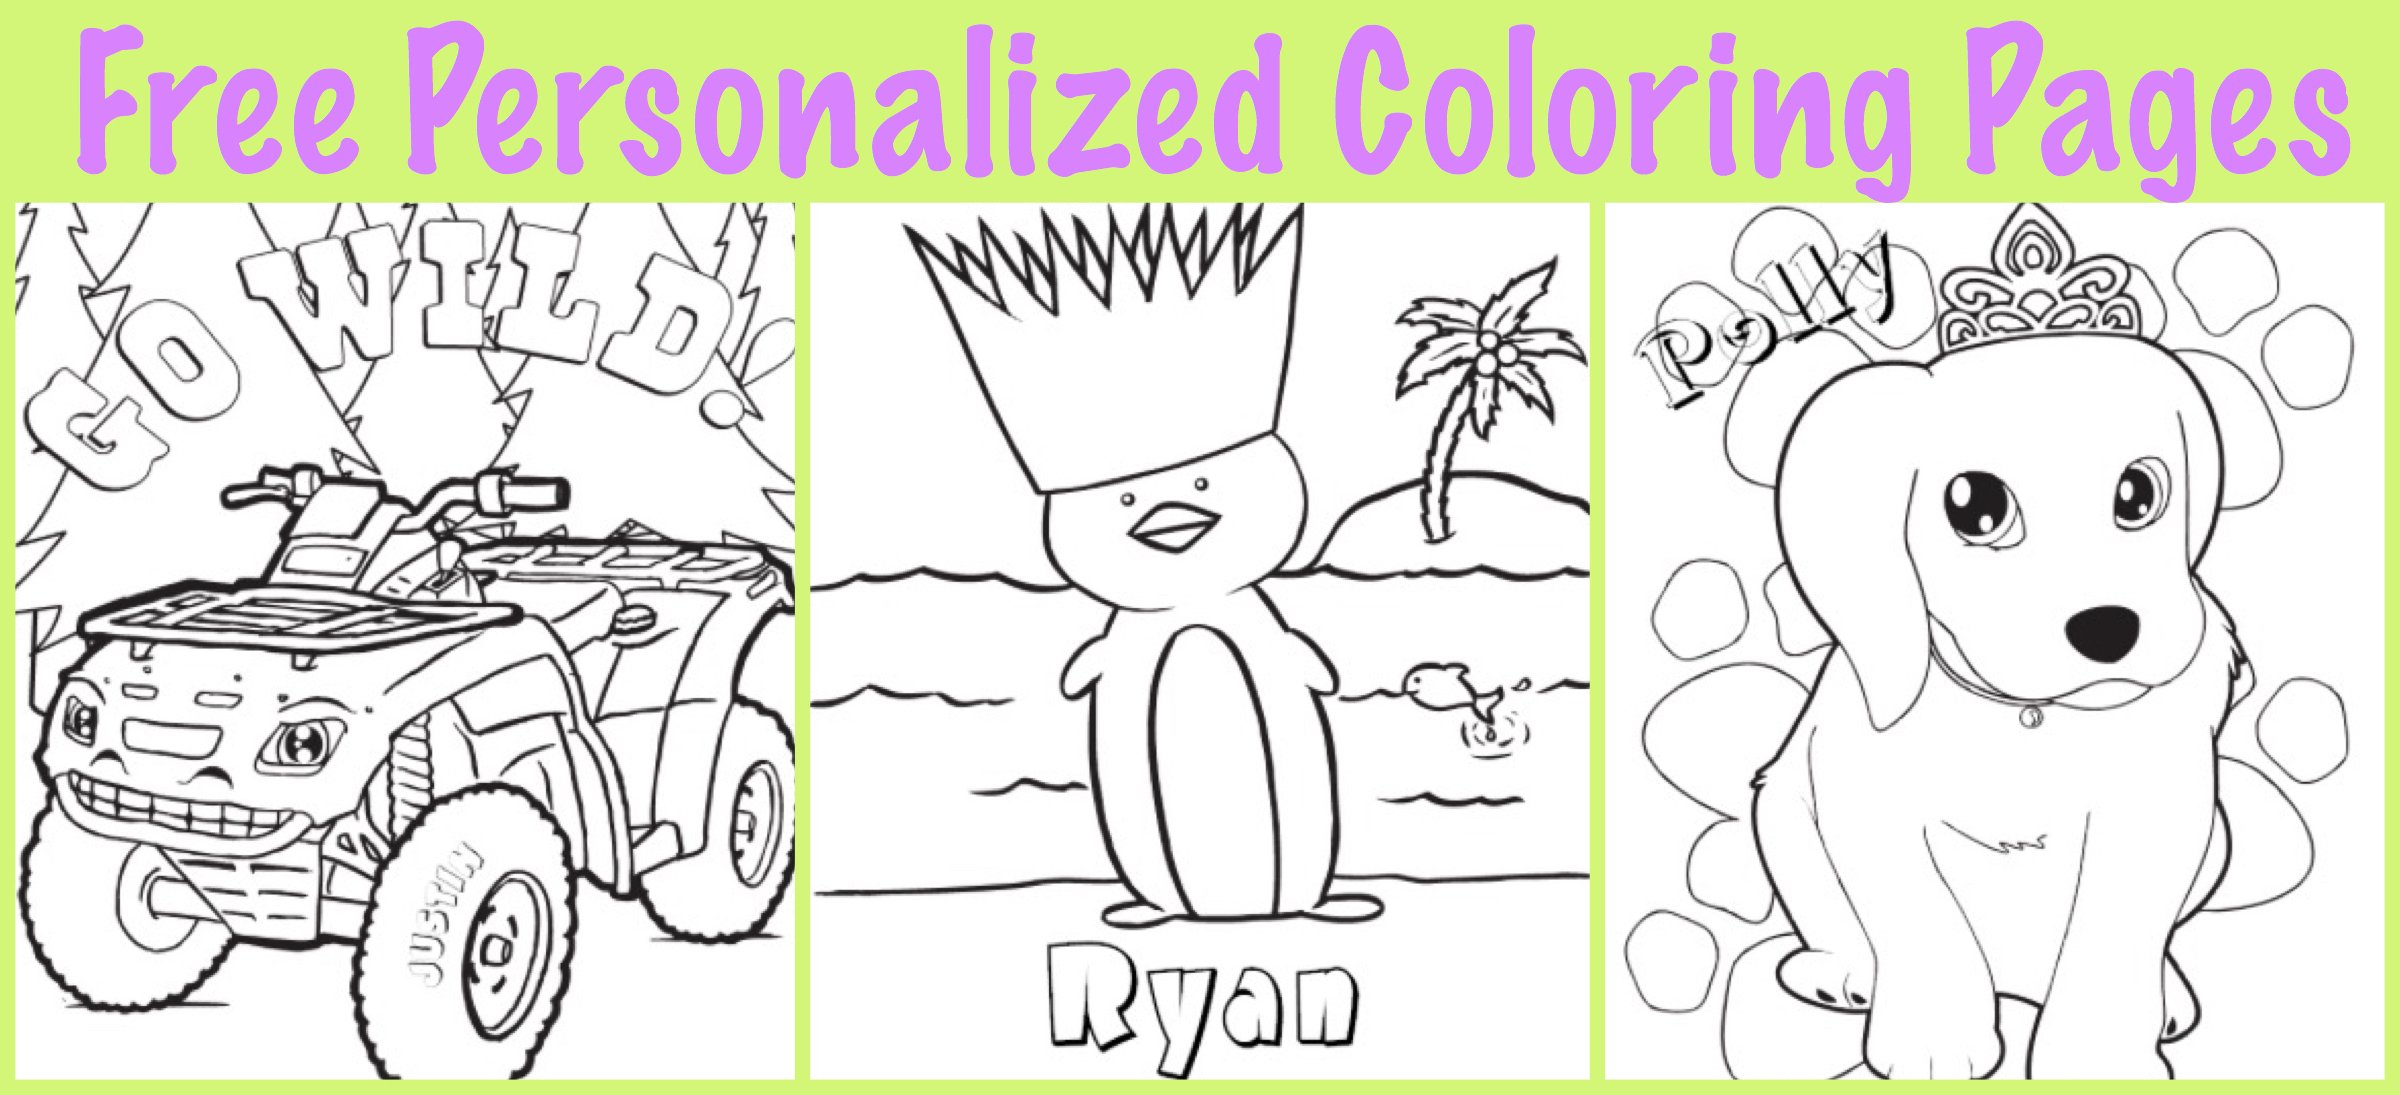 Free Personalized Printable Coloring Pages For Kids Partyideapros Com